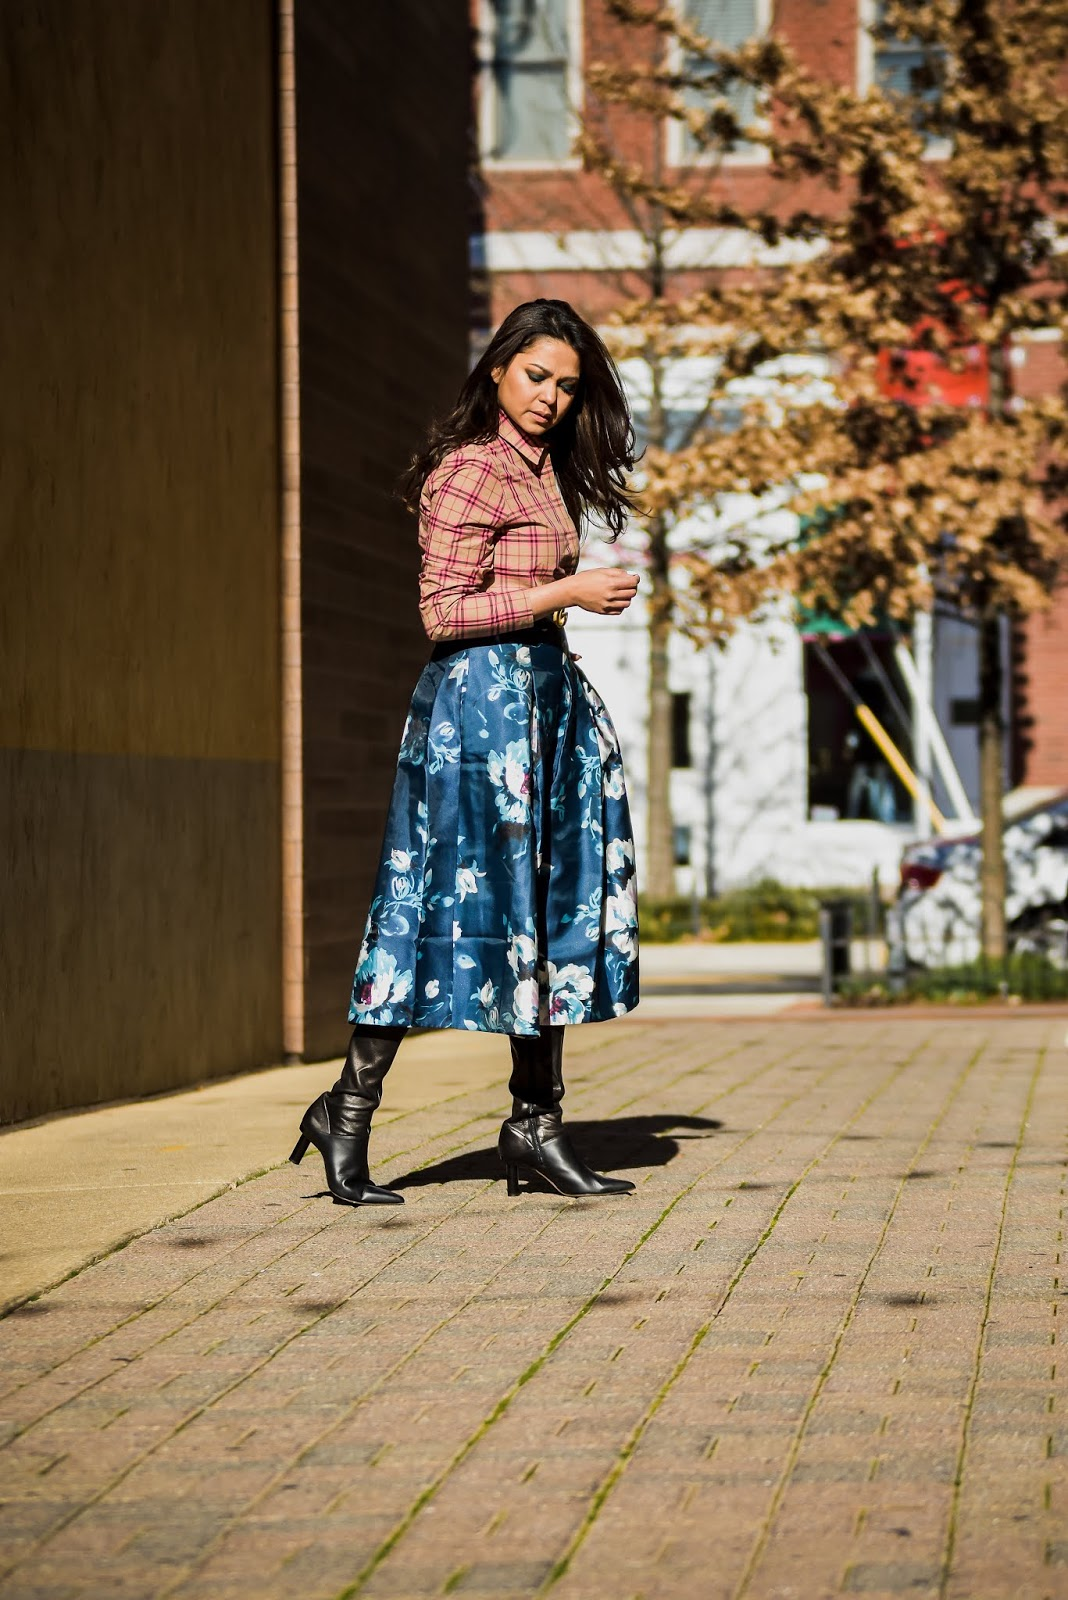 burberry pink shirt, whbm floral skirt, tibi boots, print on print, street style, bethesda row, fashion, style, saumya shiohare, myriad musings